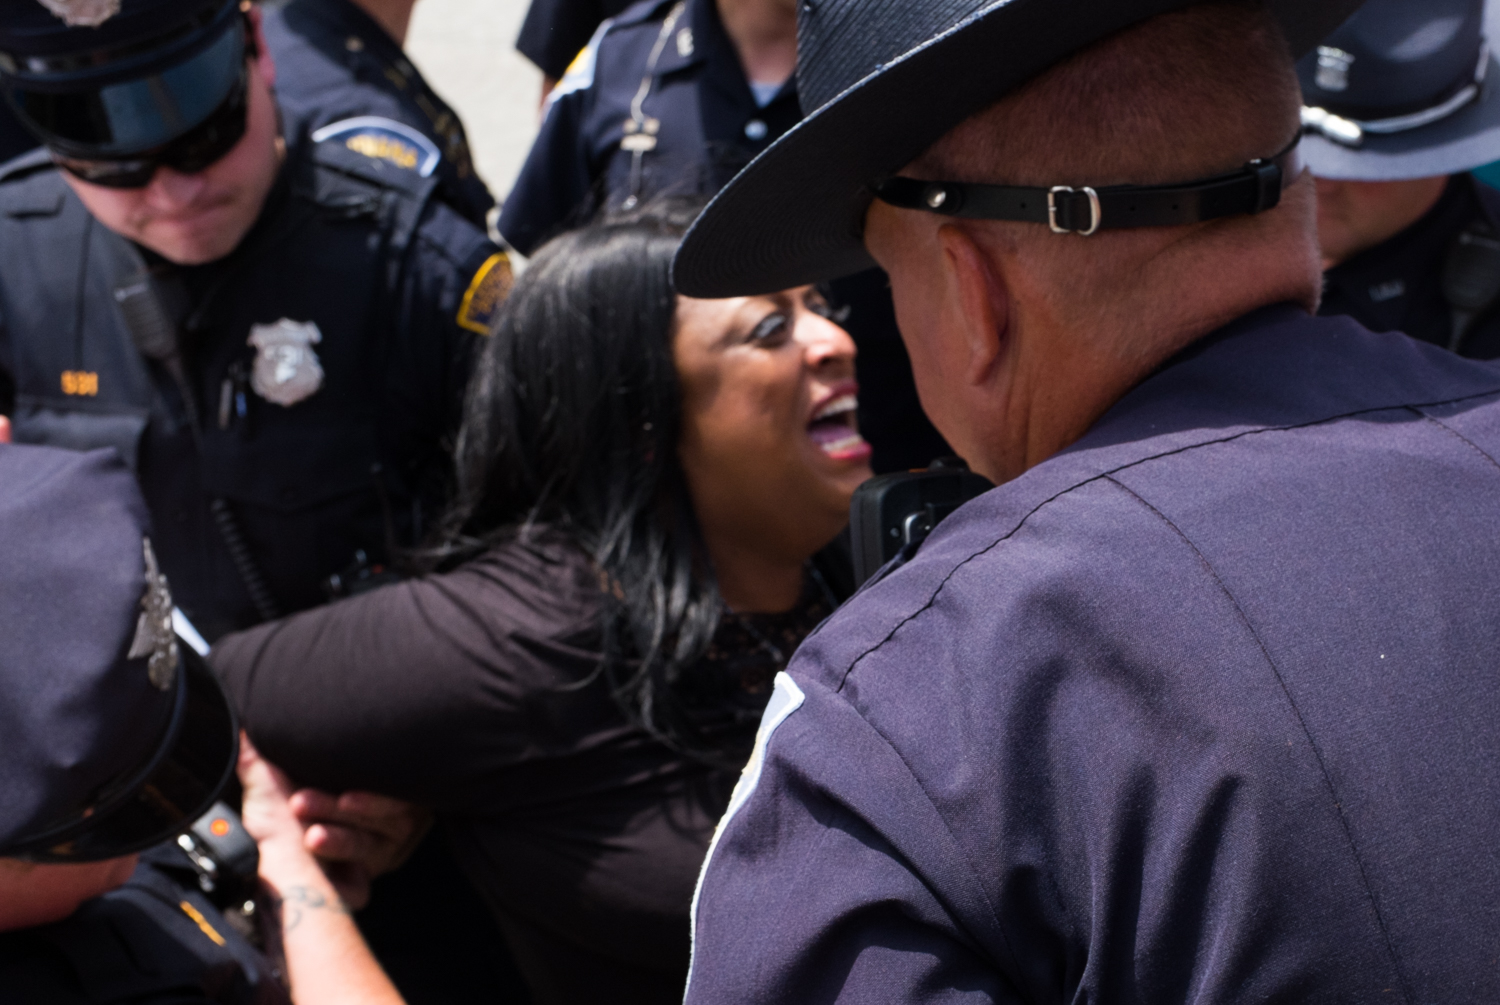 The Cleveland Police handcuff Kathy Wray Coleman.